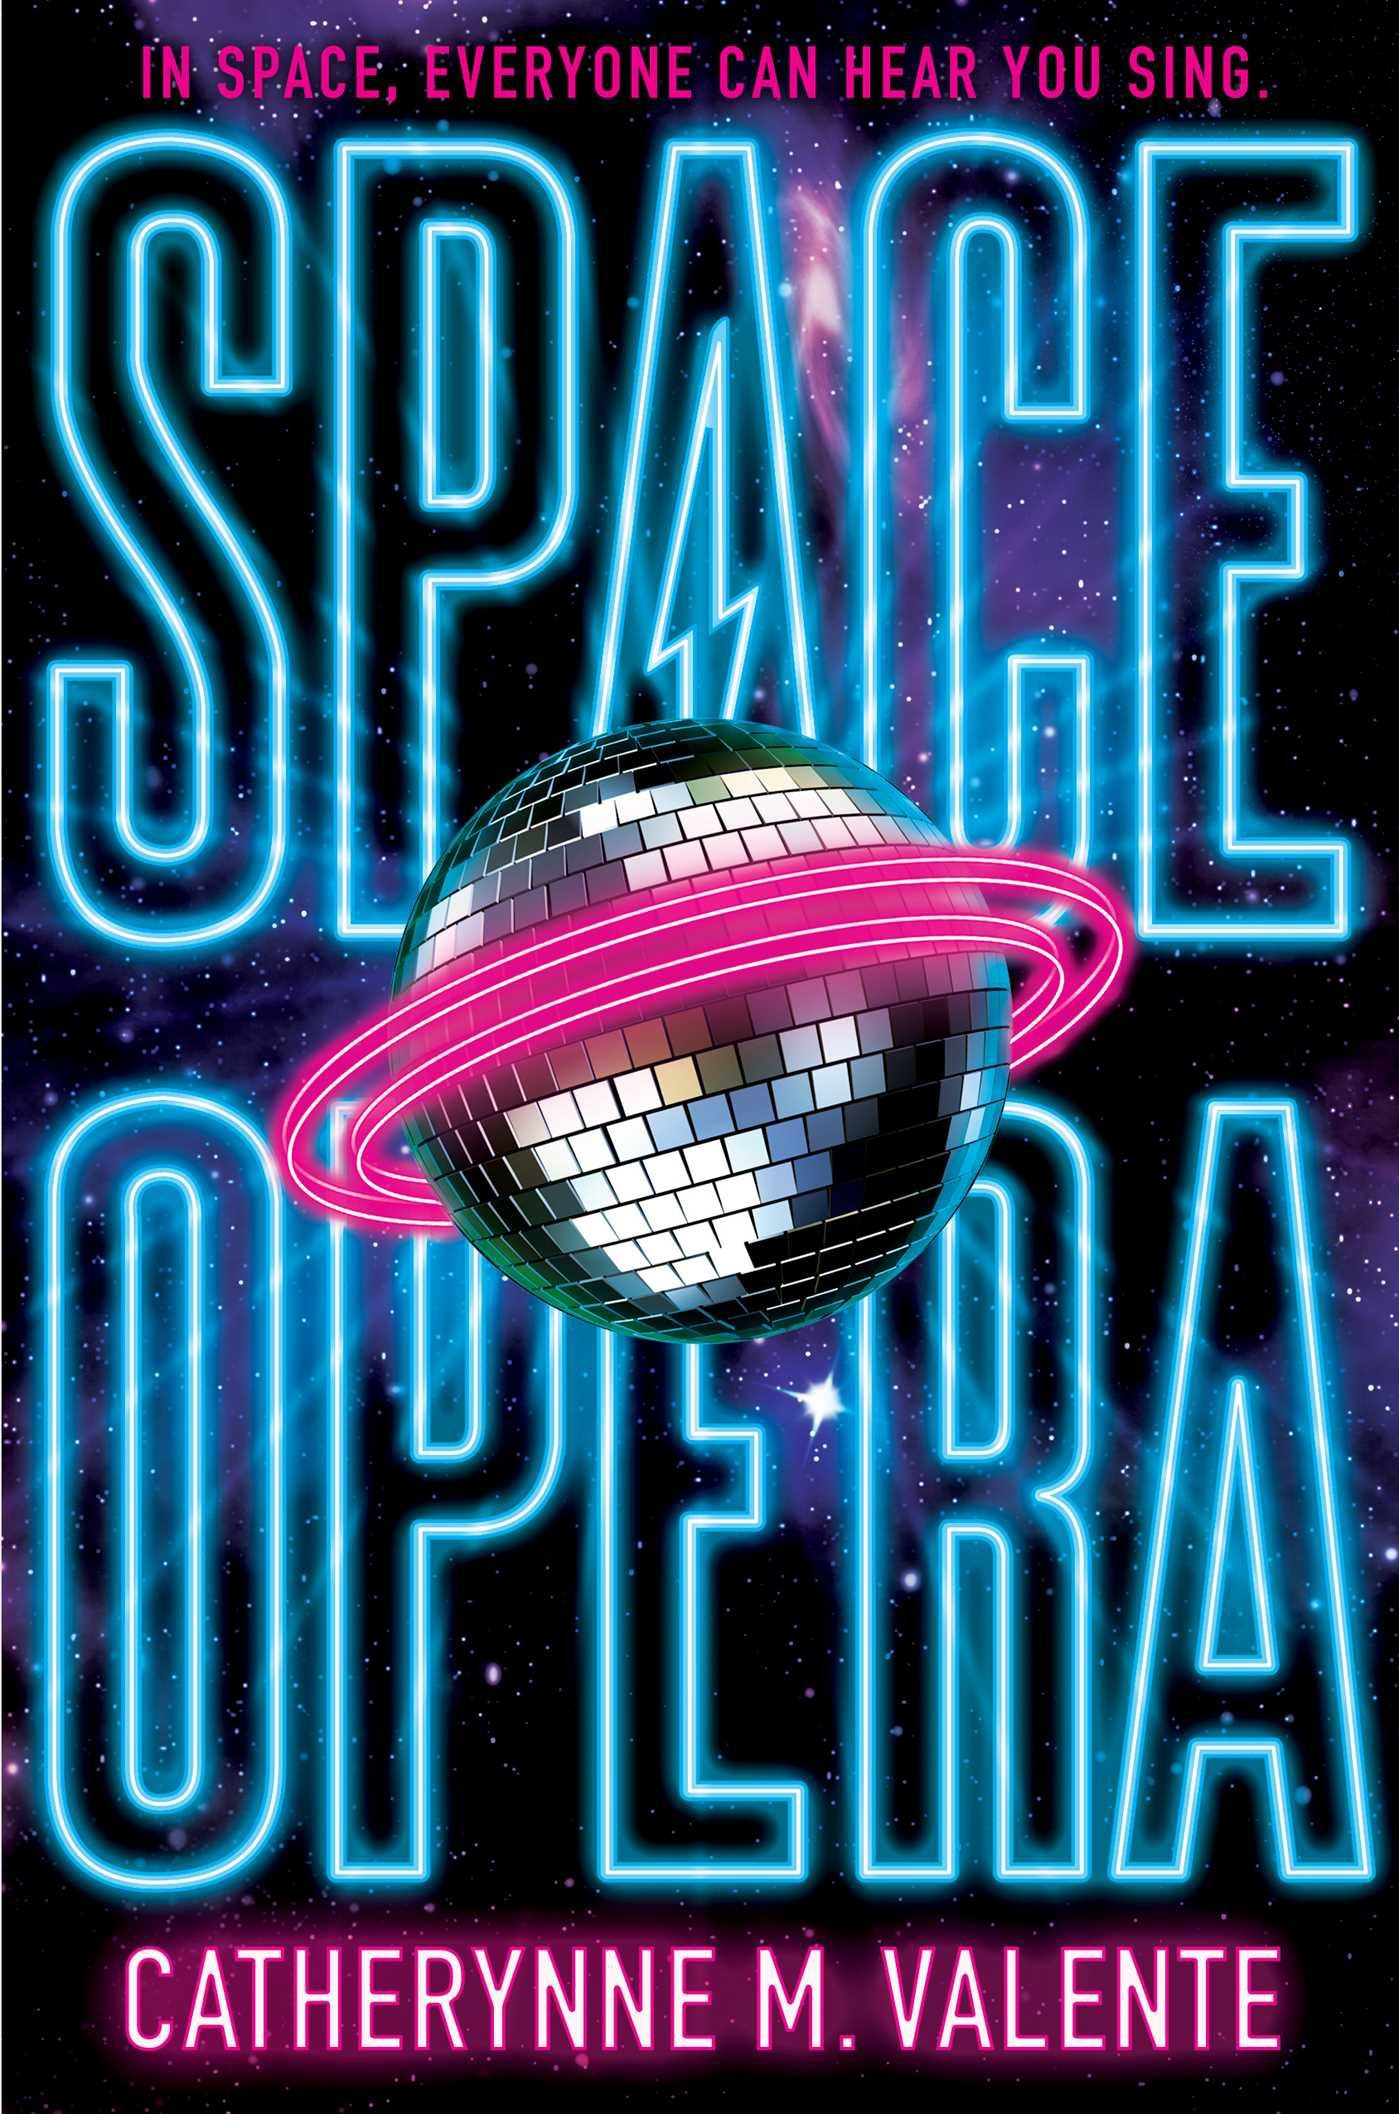 Book Review: Space Opera, by Catherynne M. Valente